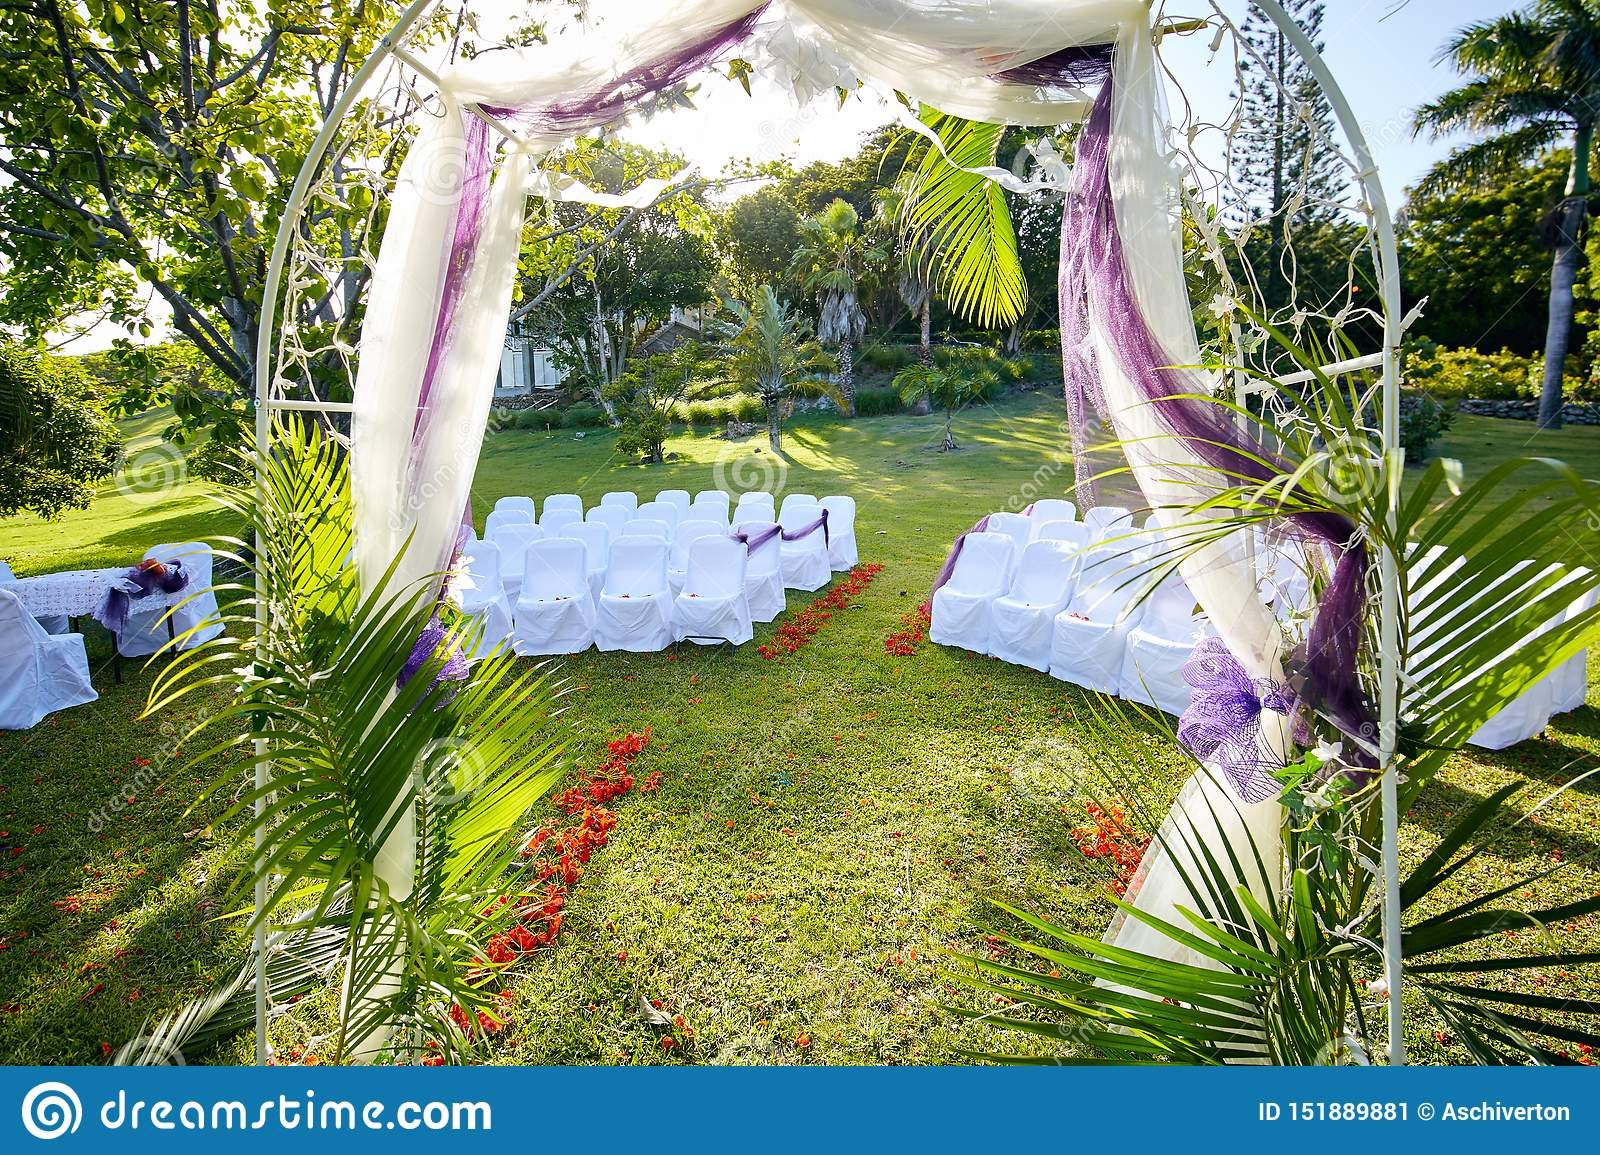 Palm-fringed Wedding Arch in Lush Tropical Garden with Flamboyant Trees